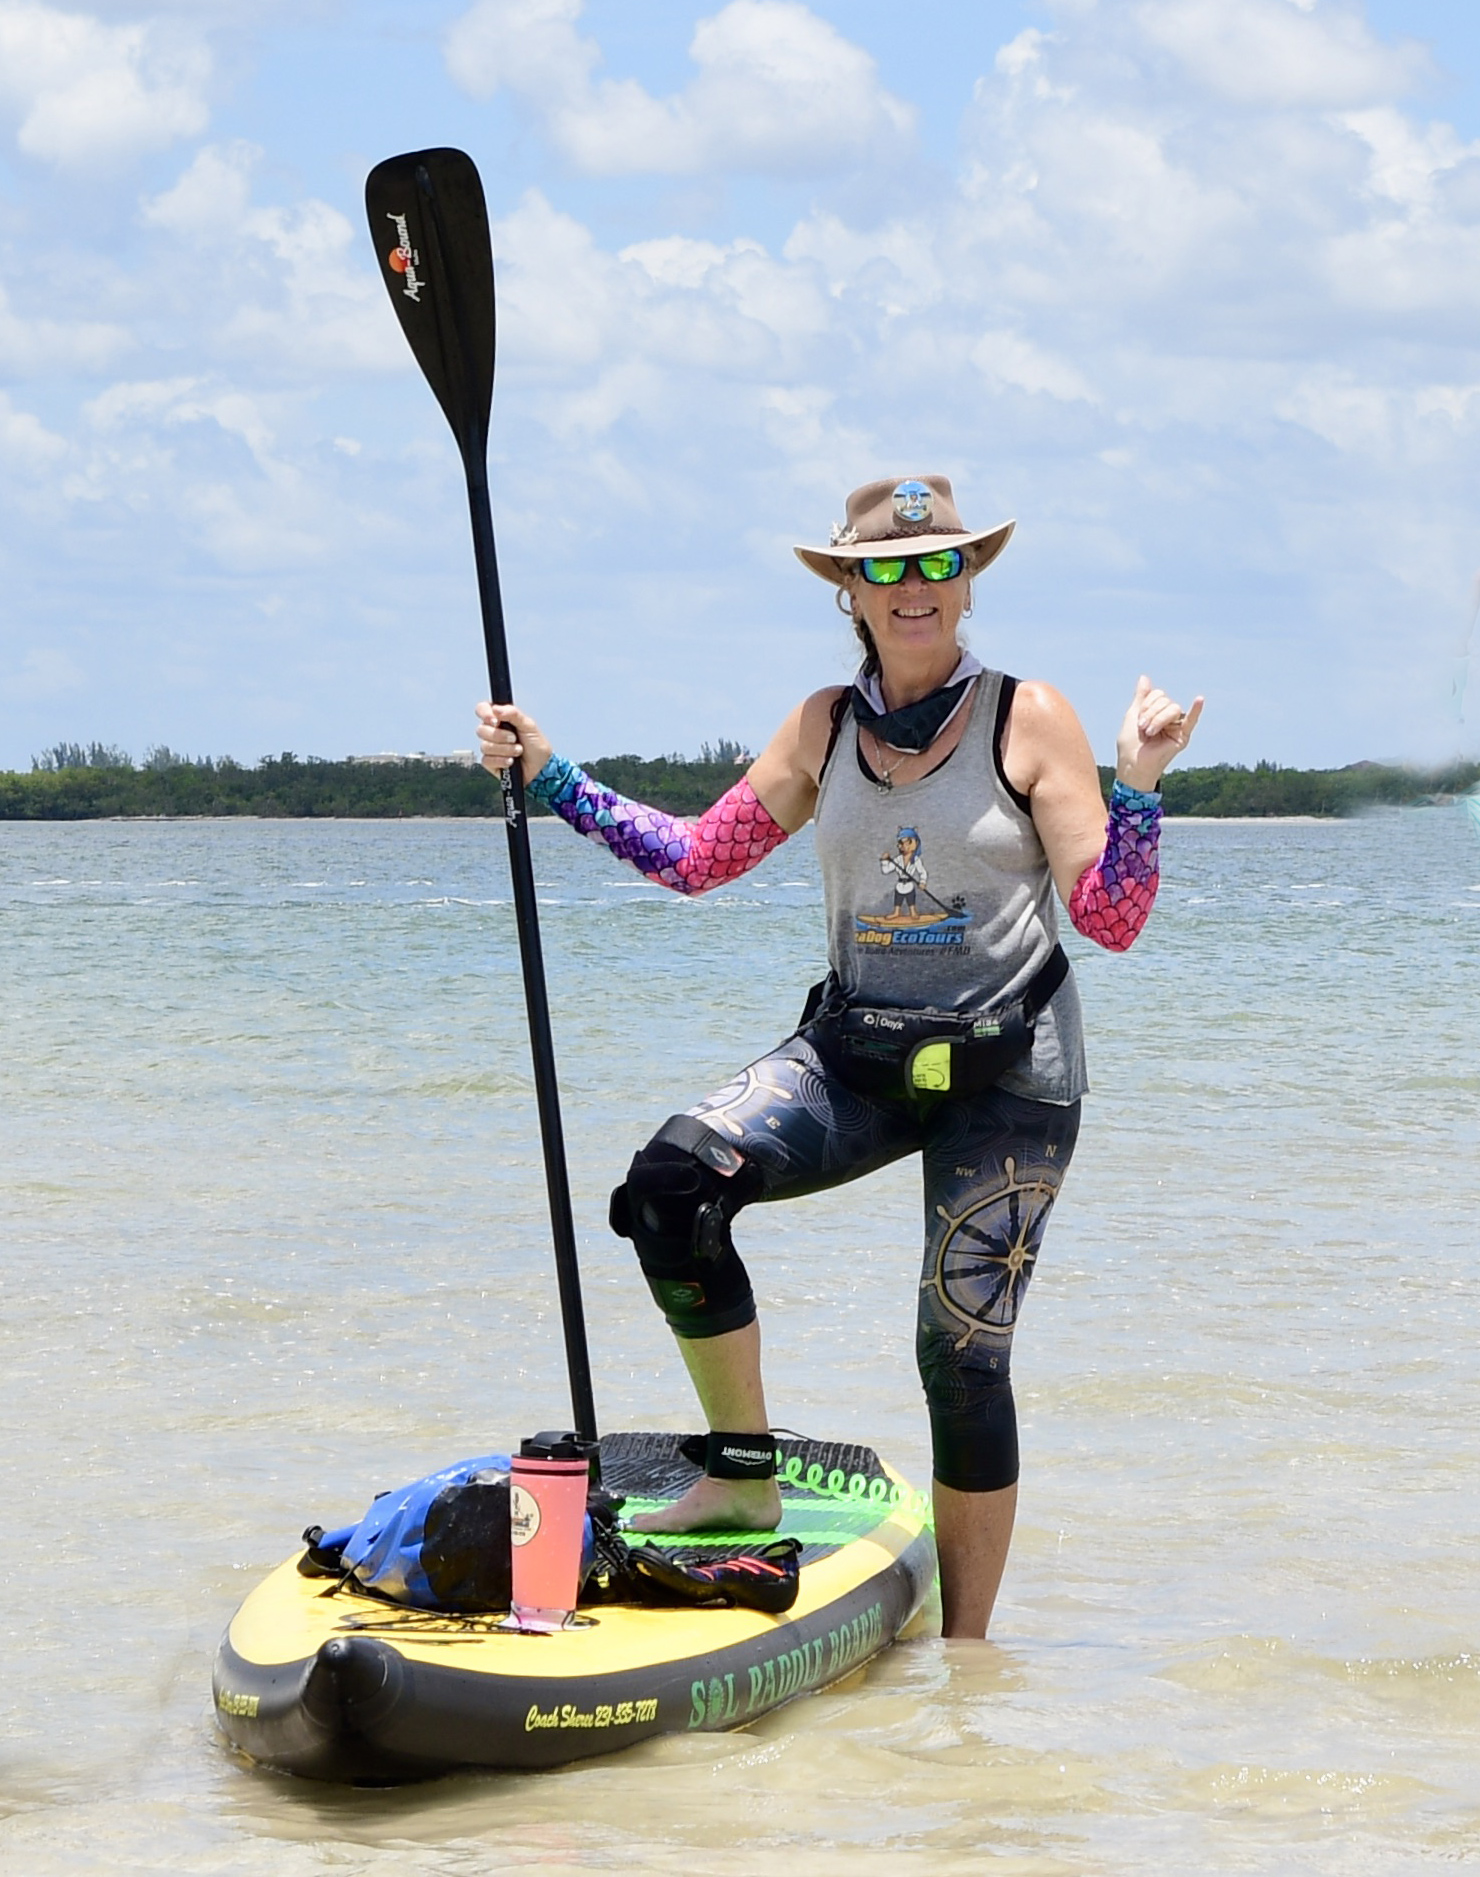 copach sheree paddle boarding - image